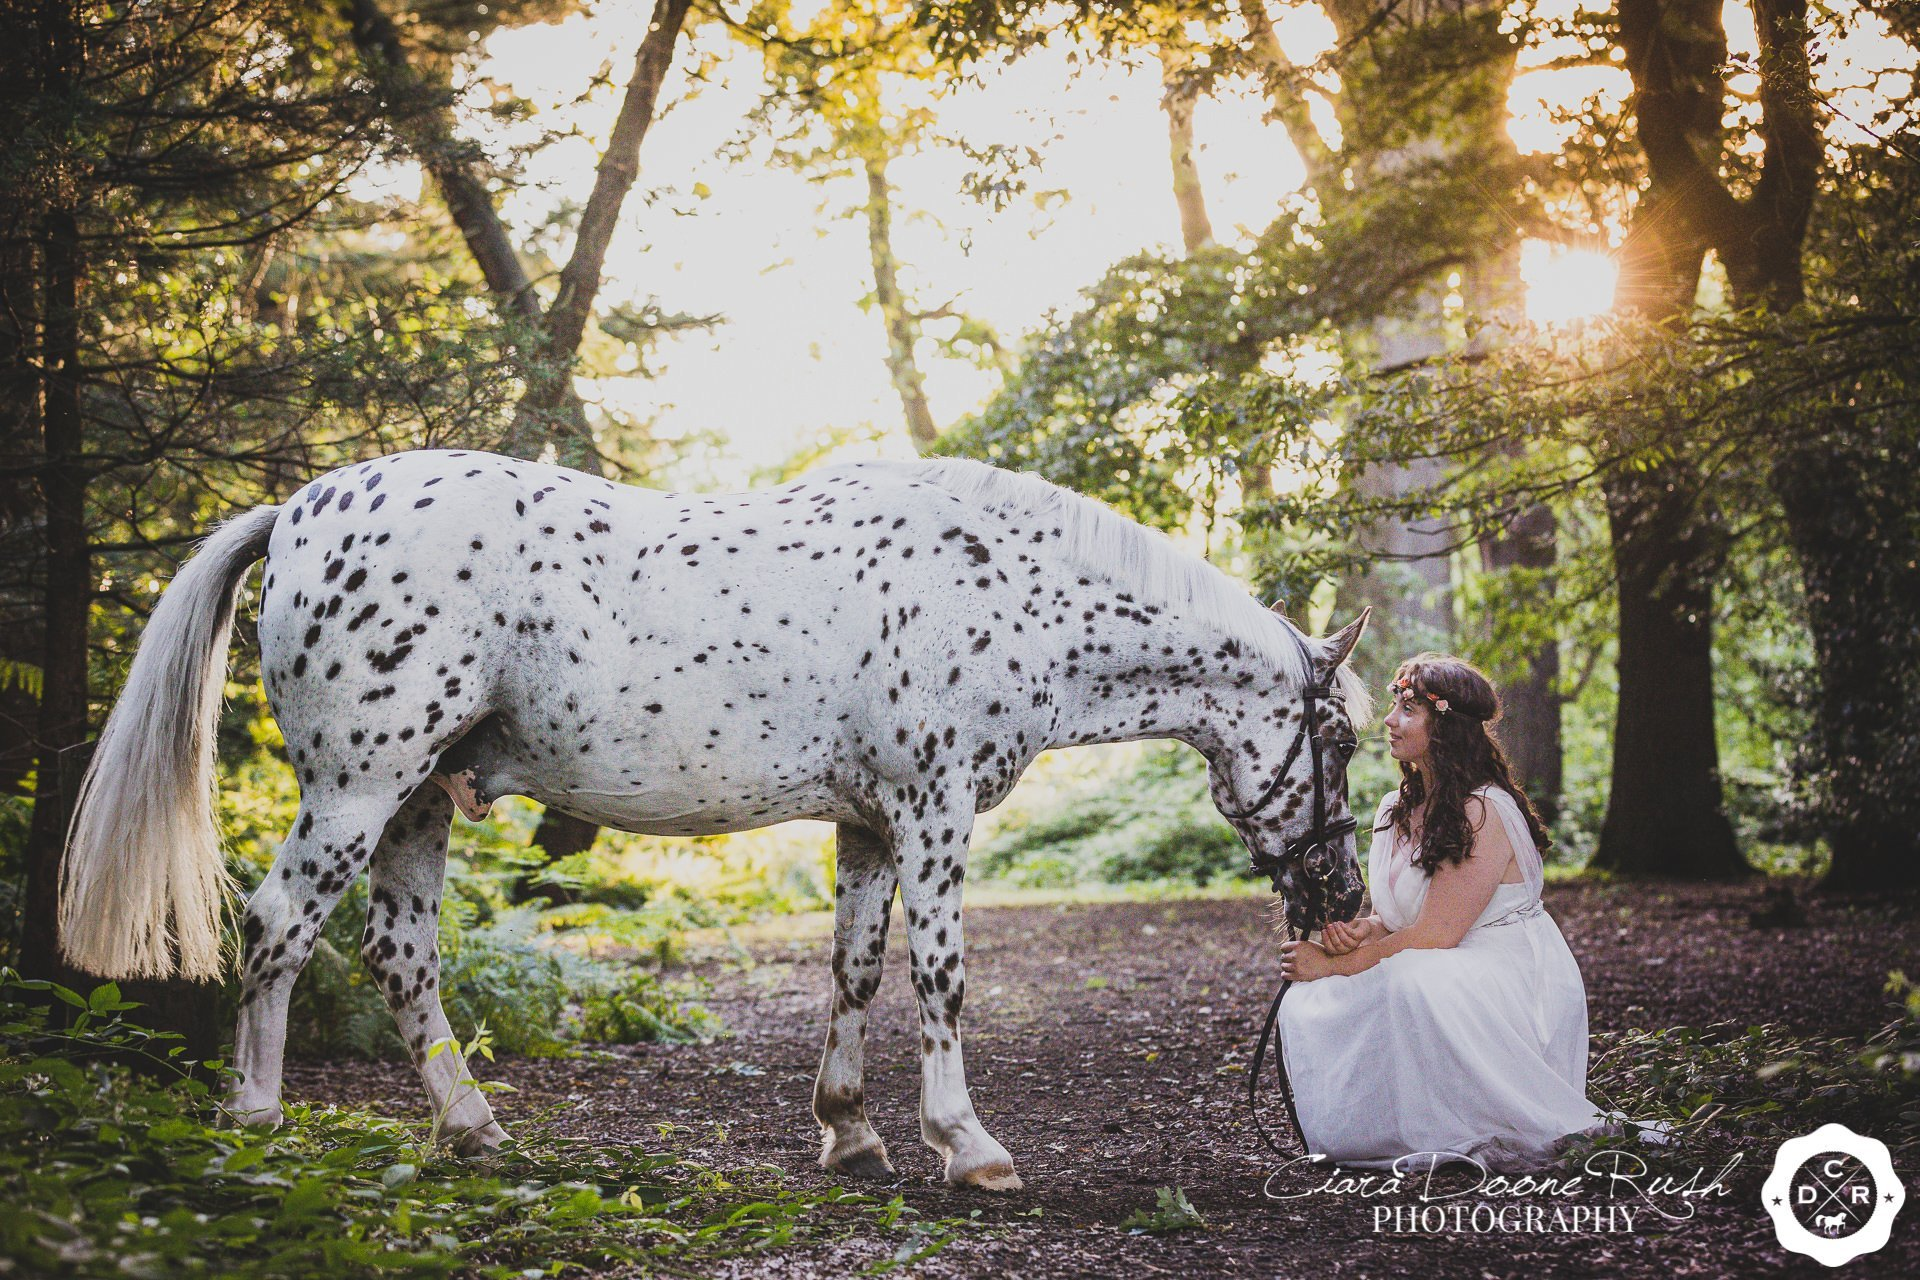 a girl and her horse in the woods